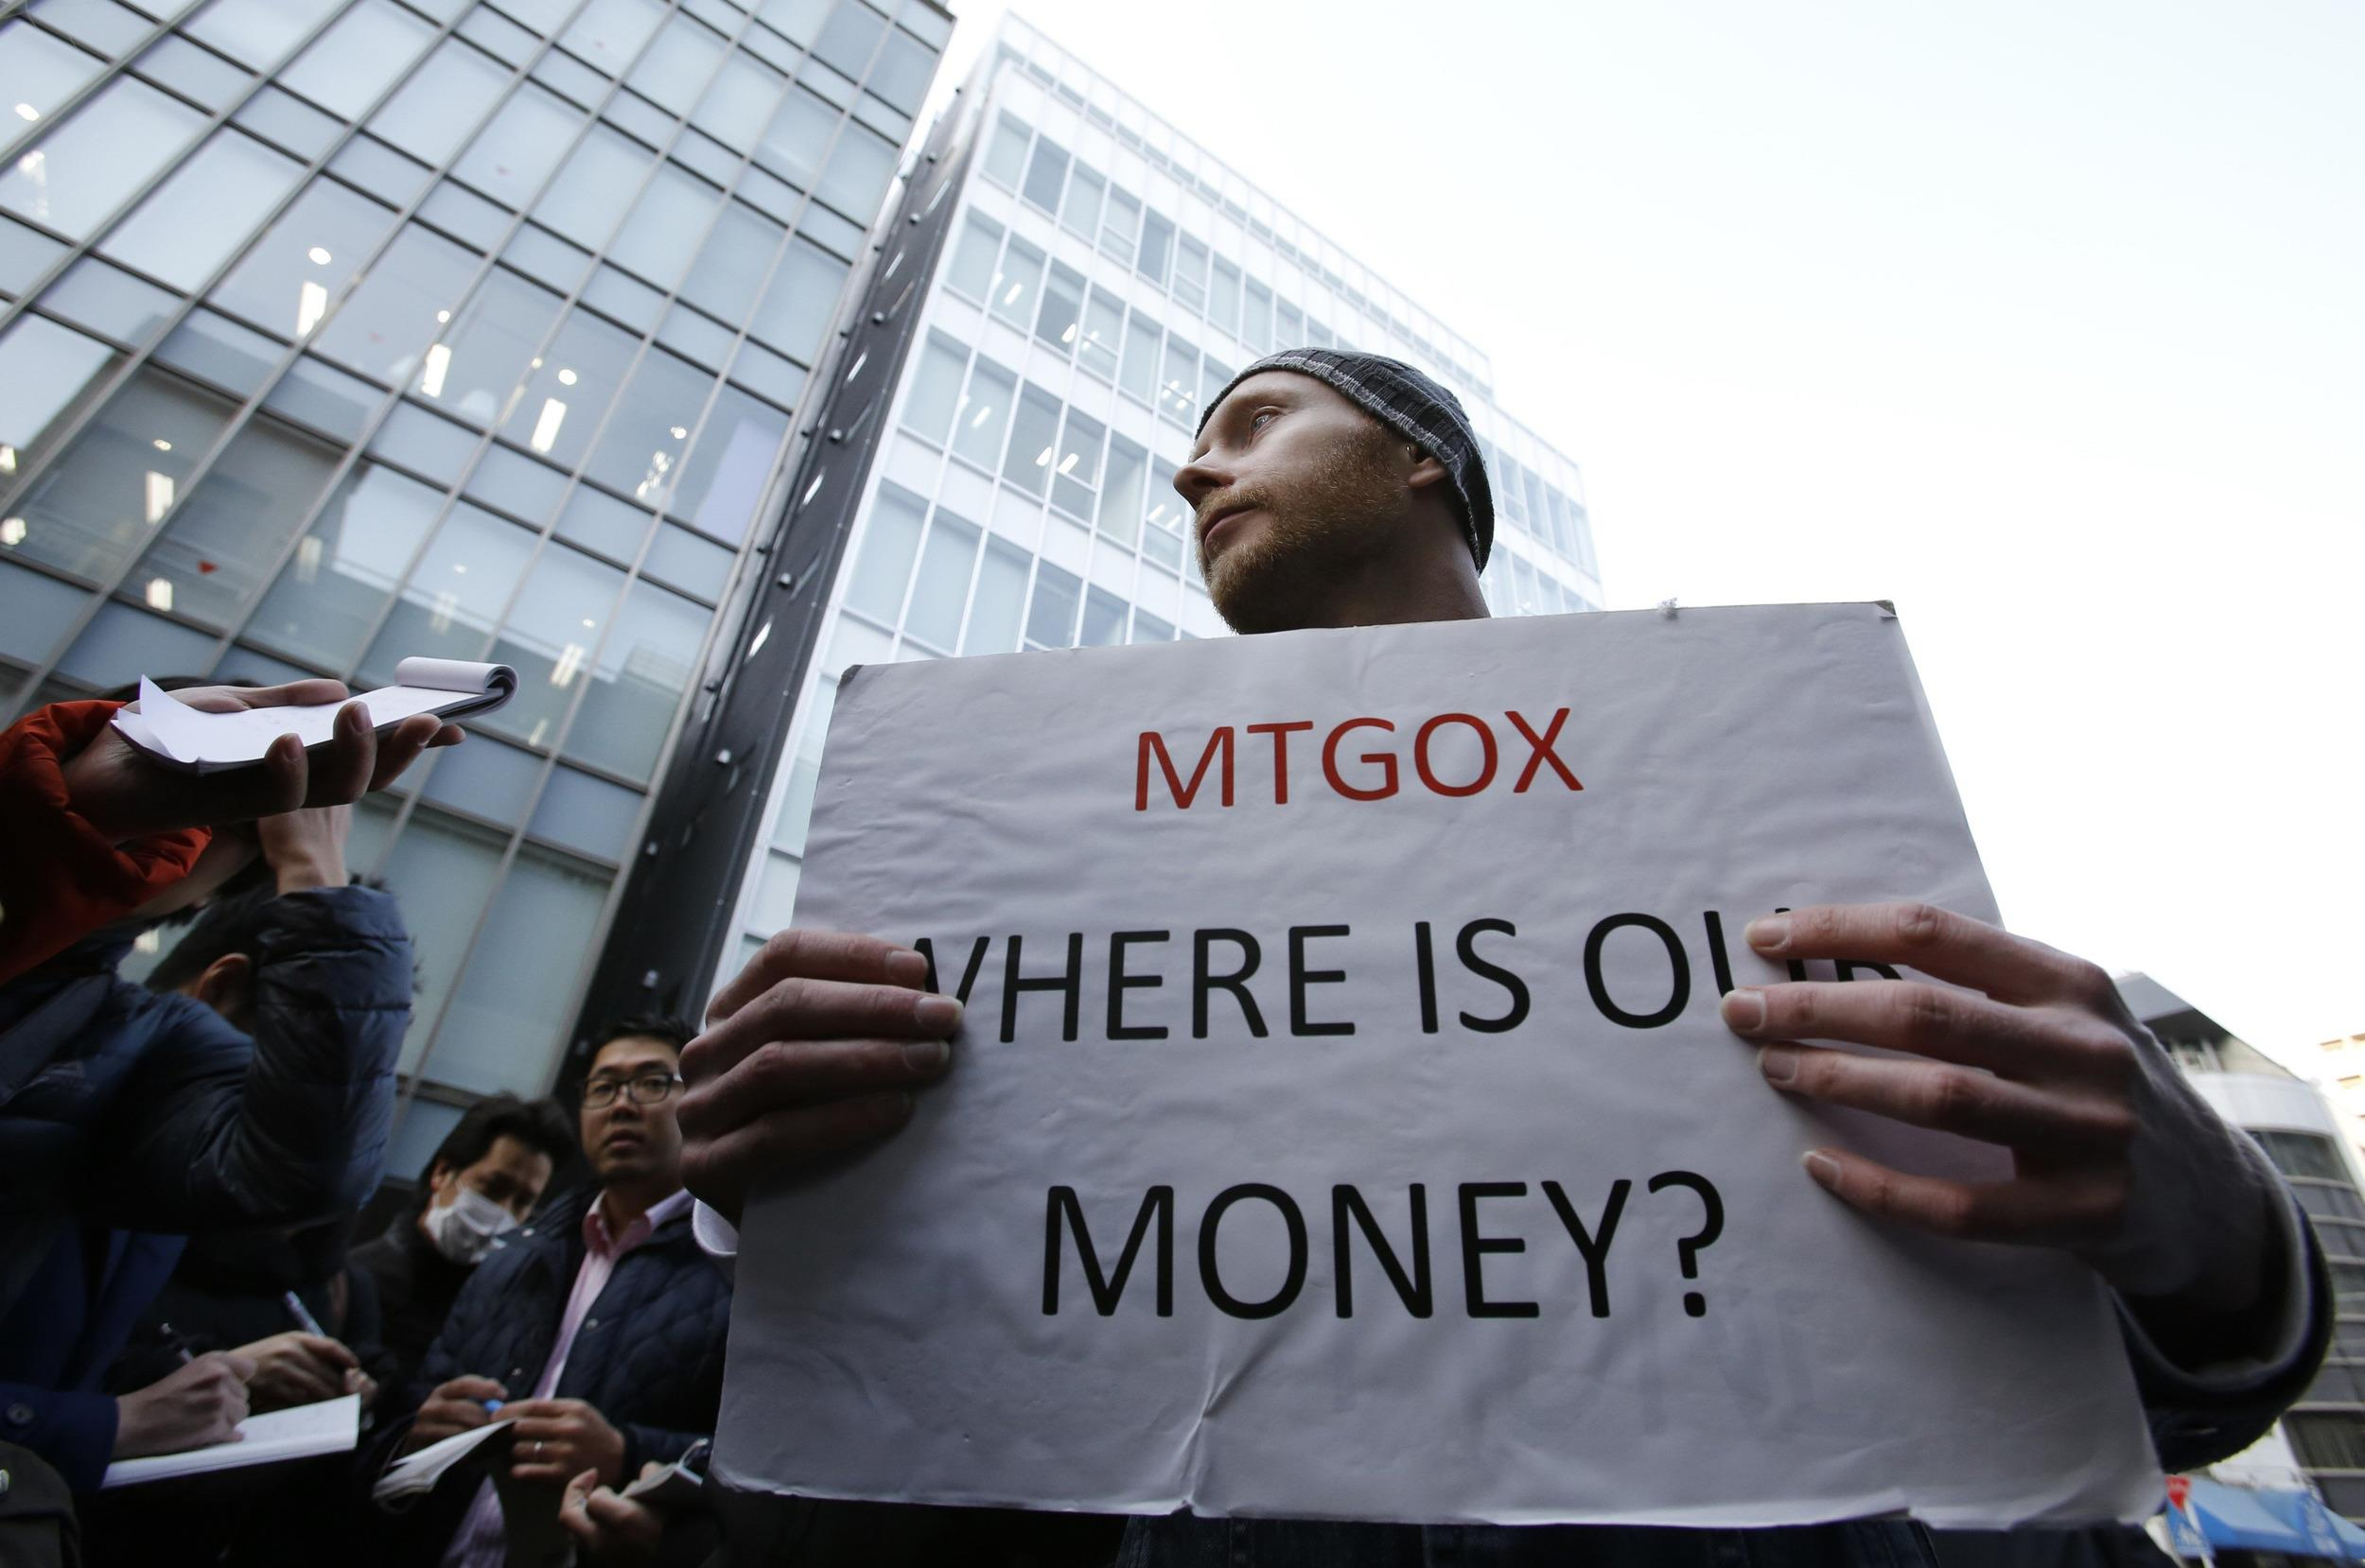 Bitcoin exchange Mt. Gox has filed for bankruptcy protection in the U.S. following a similar move in Tokyo